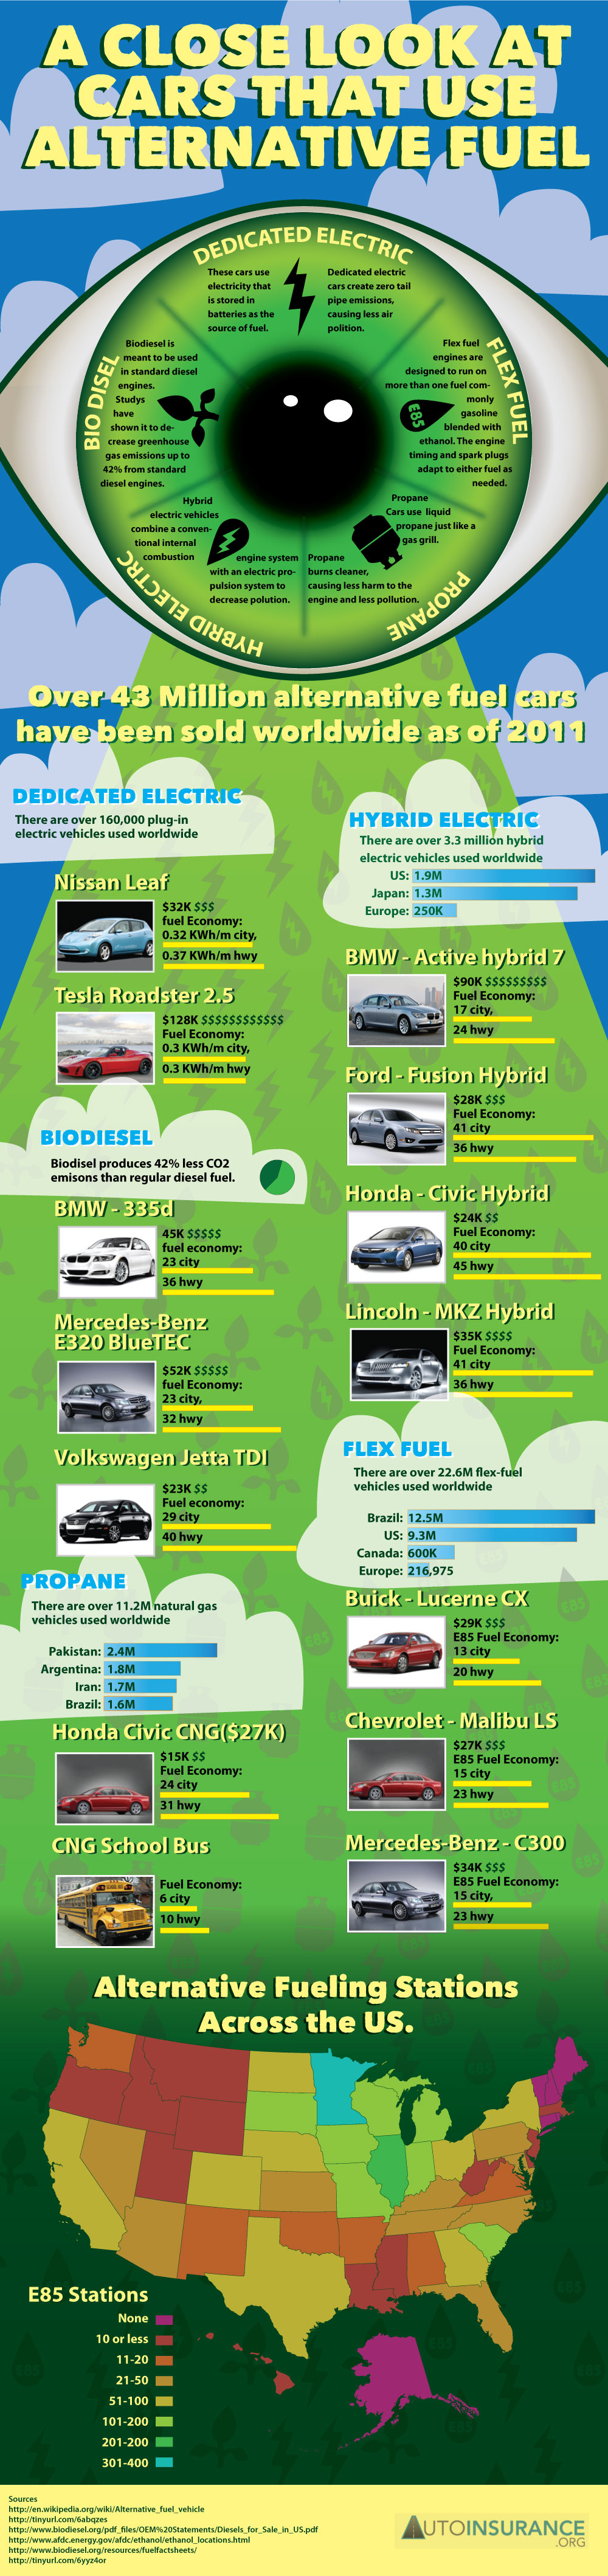 Cars that use alternative fuel